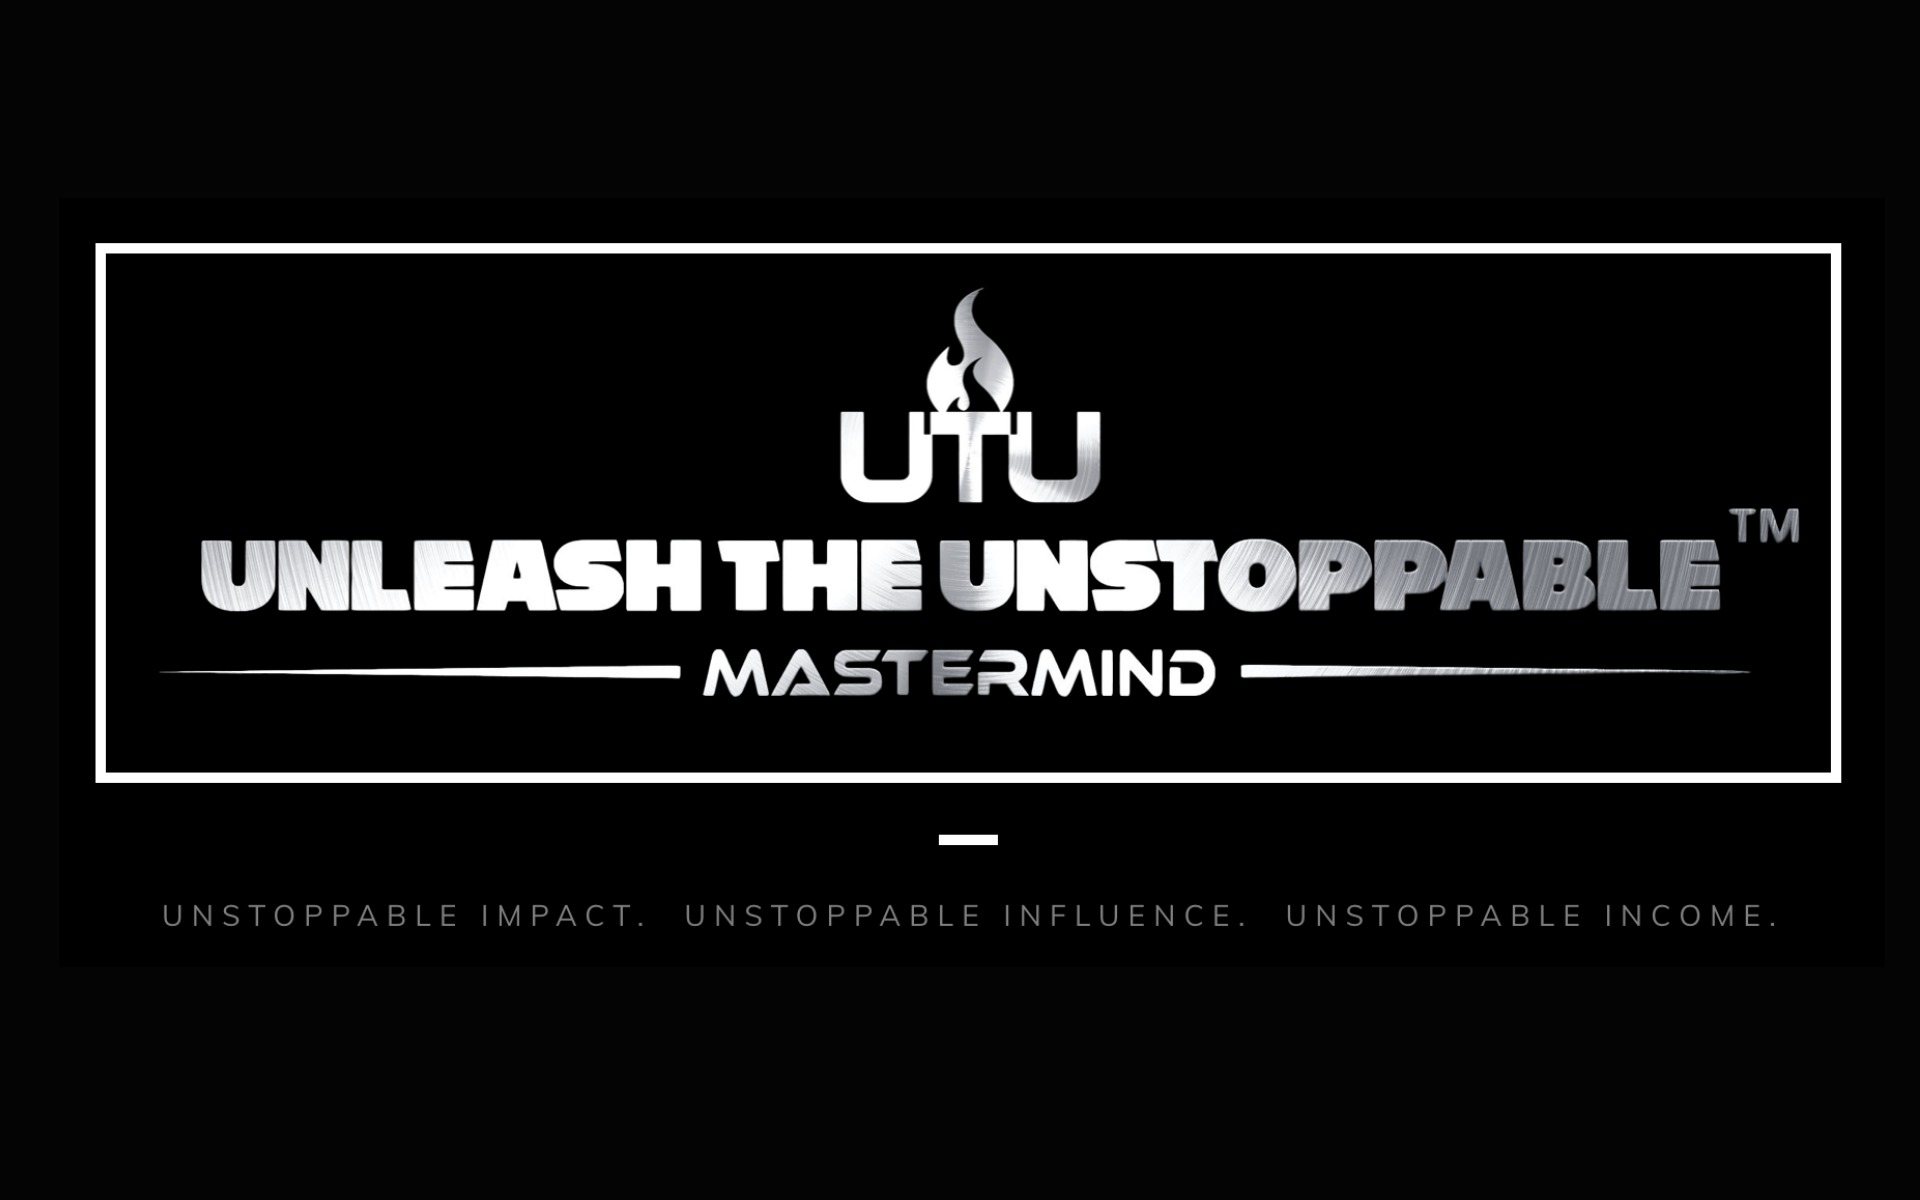 Unleash The Unstoppable Mastermind